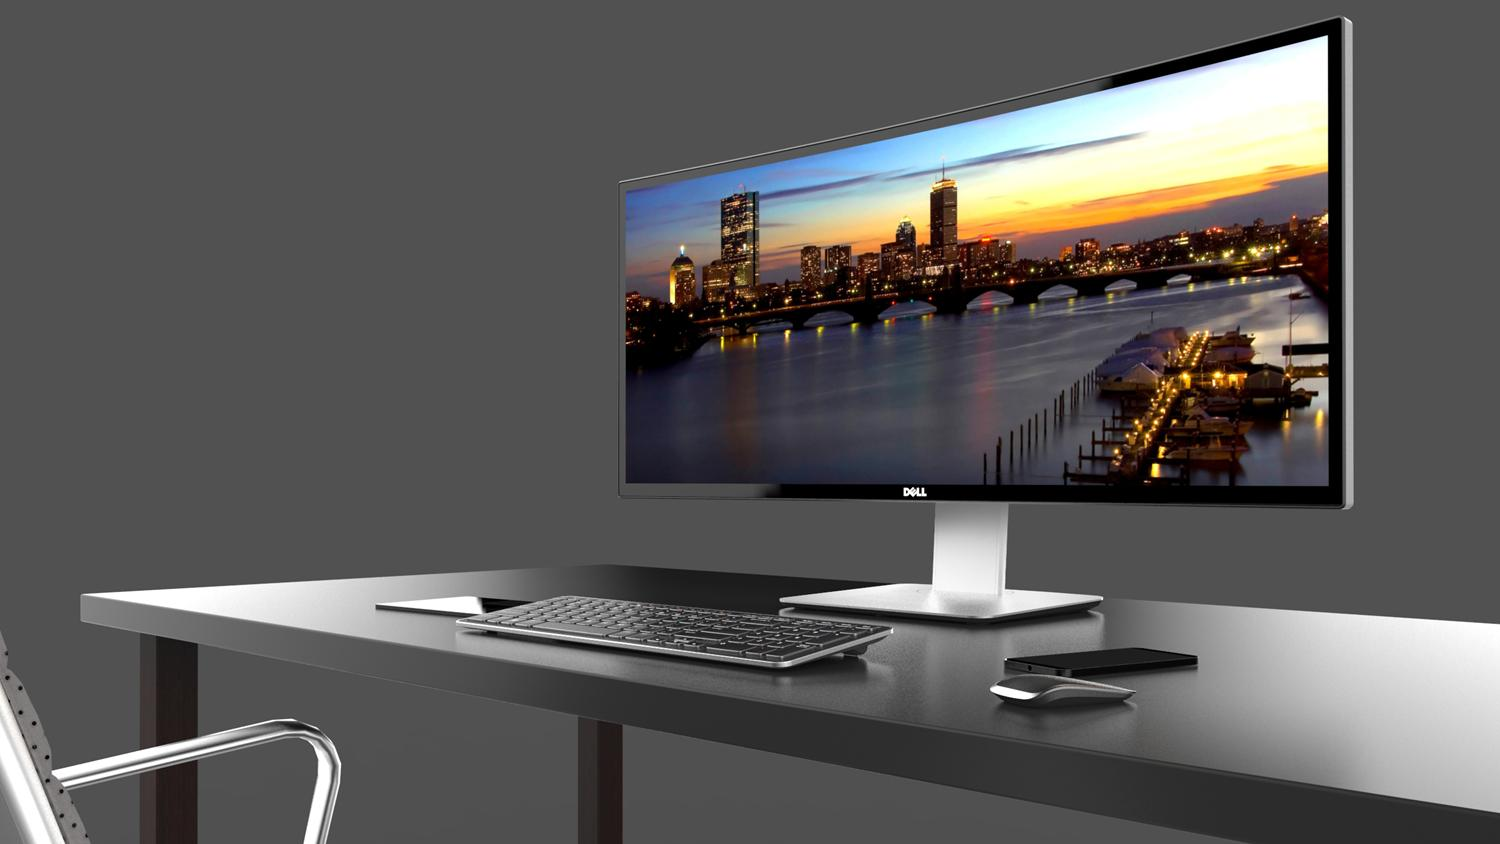 Lowest ever! Dell UltraSharp U3415W 34-Inch Curved LED-Lit Monitor